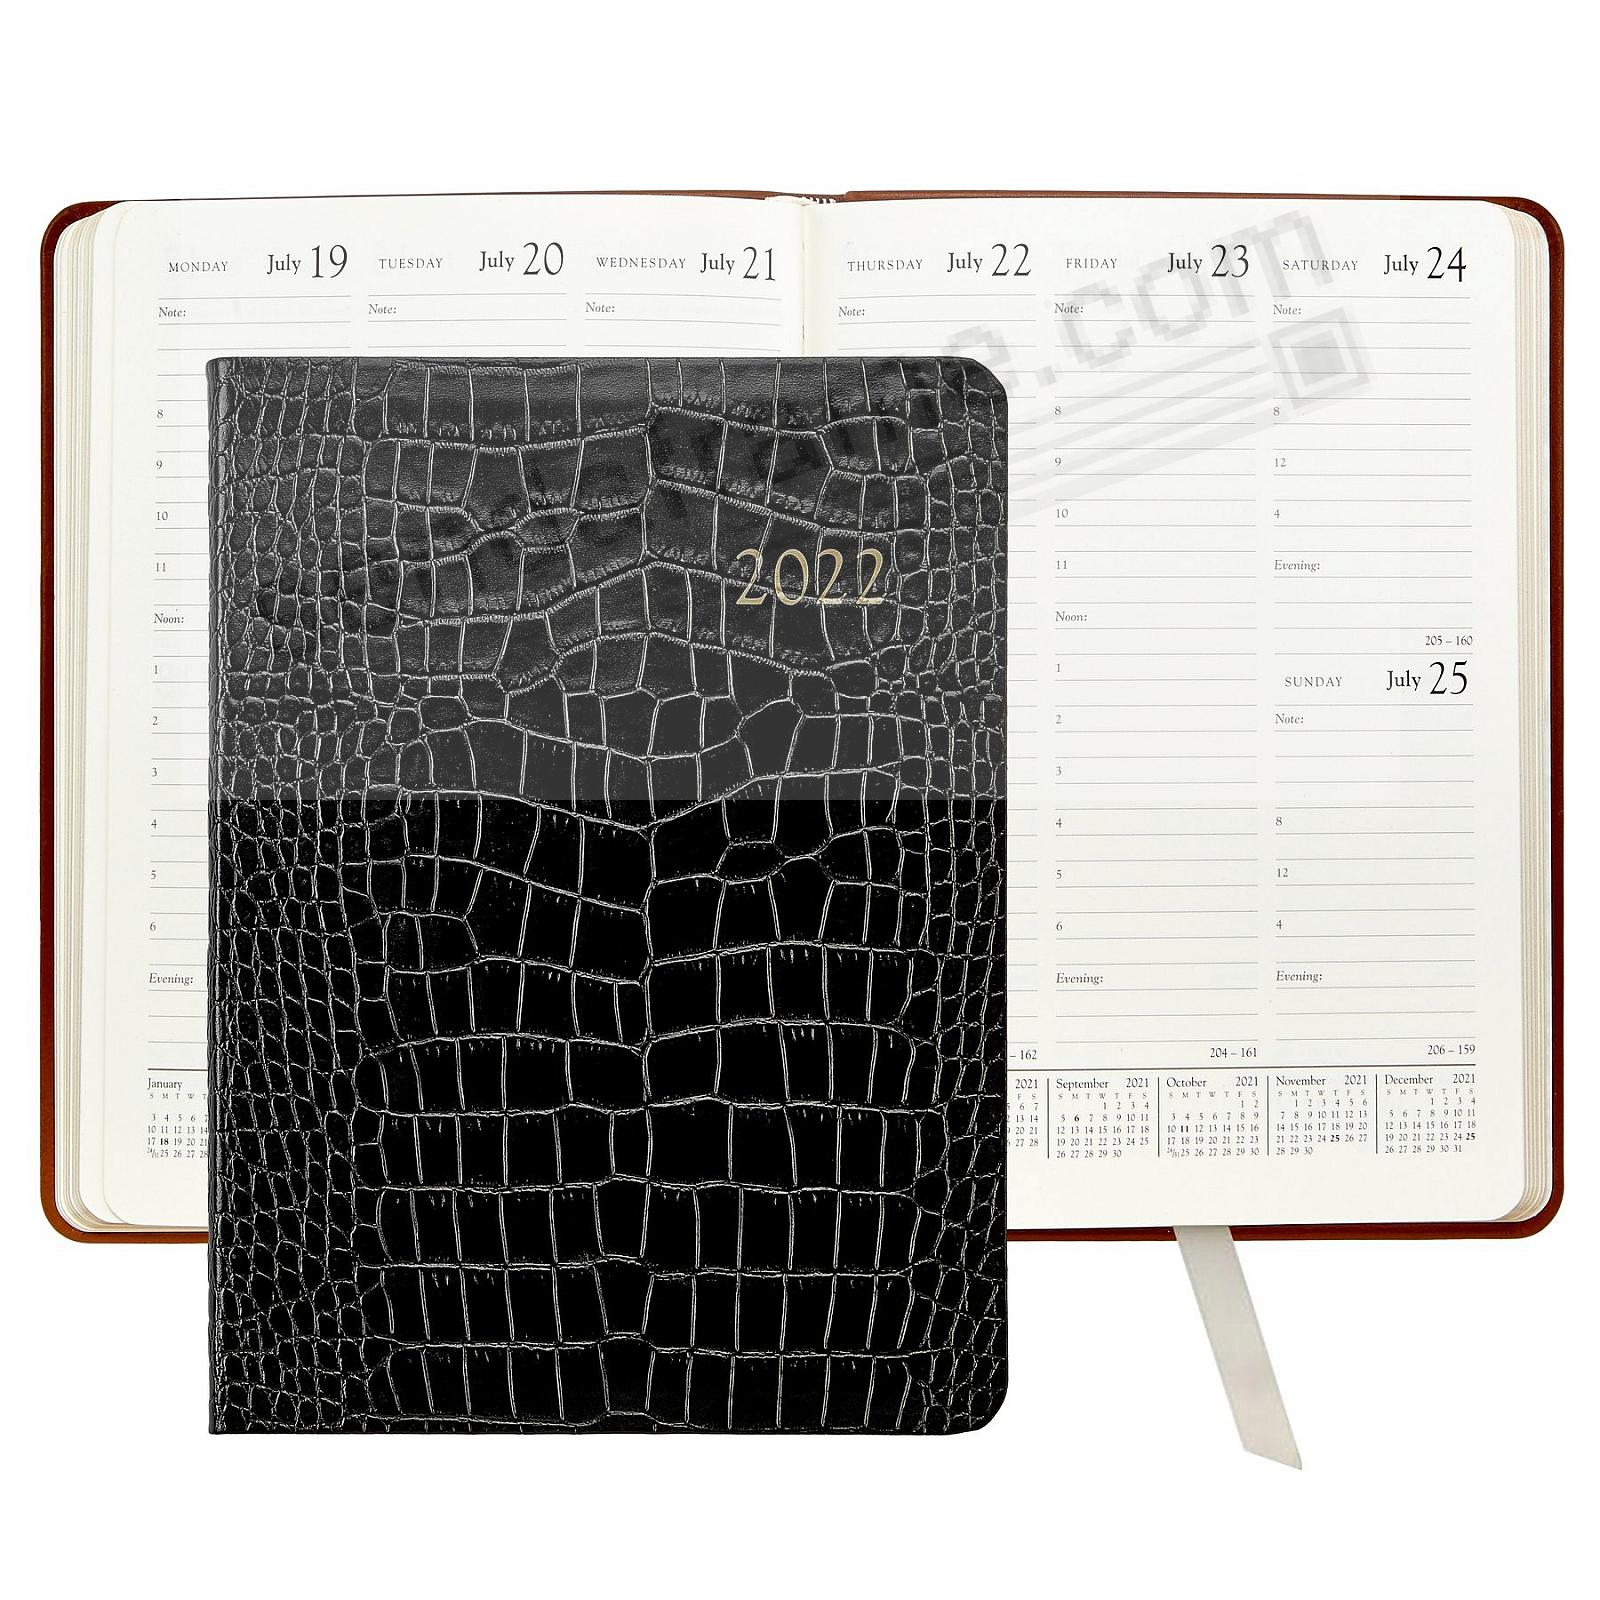 2021 Desk Diary 9inch BLACK CROCODILE EMBOSSED Leather by Graphic Image™